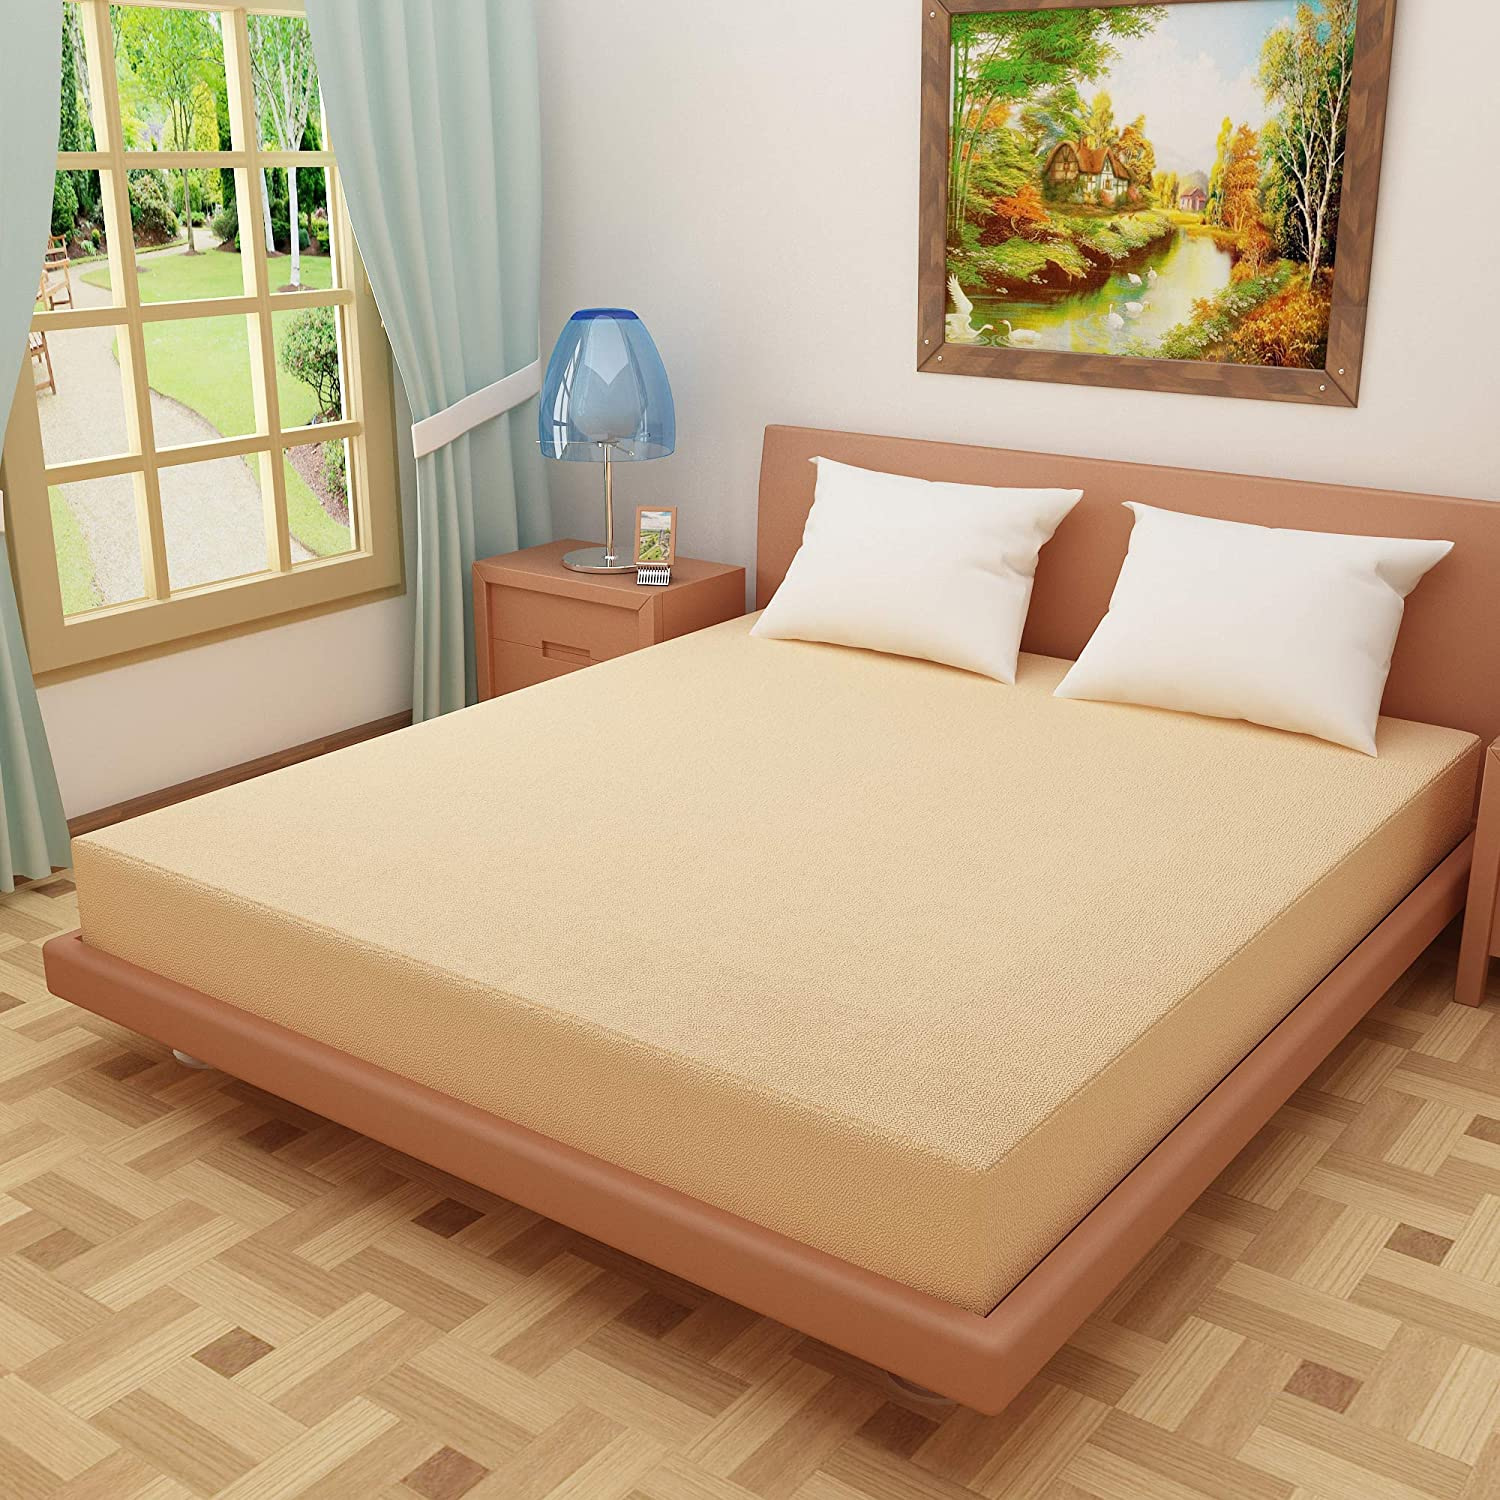 Dream Care waterproof and dust proof mattress protector Beige